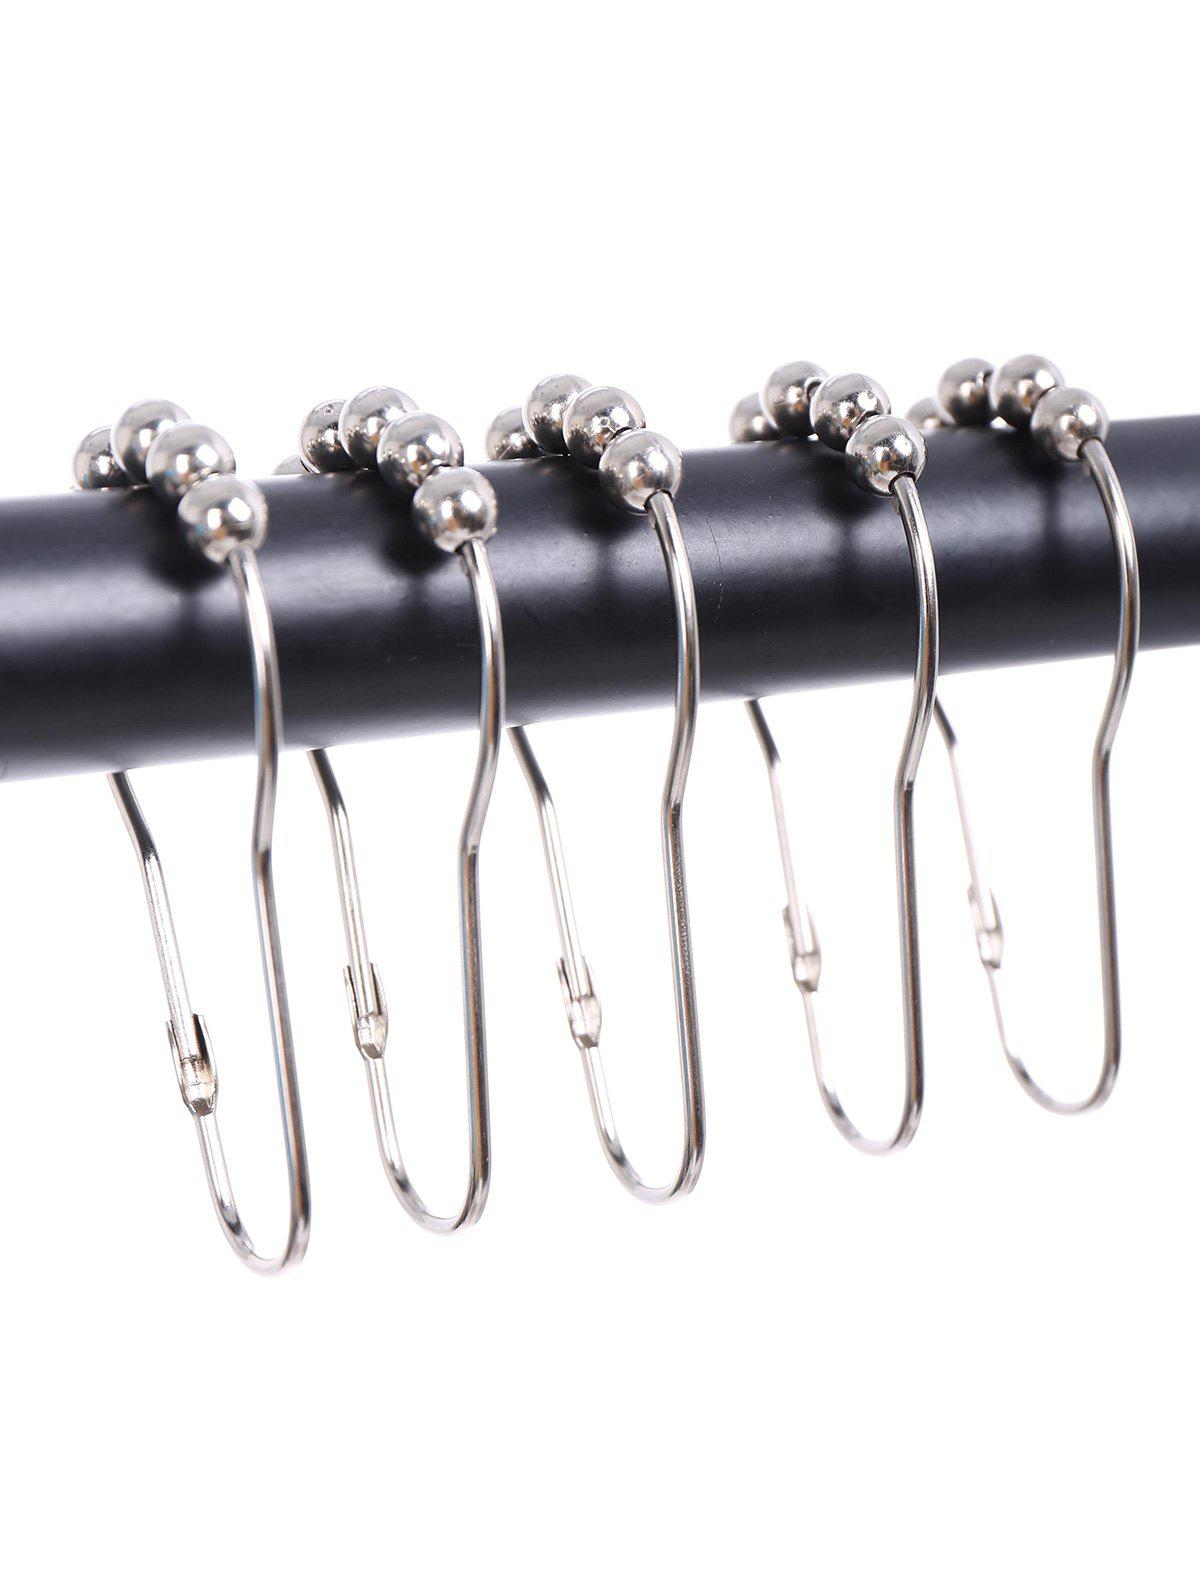 12Pcs Nickel Steel Beads Shower Curtain Hooks - SILVER